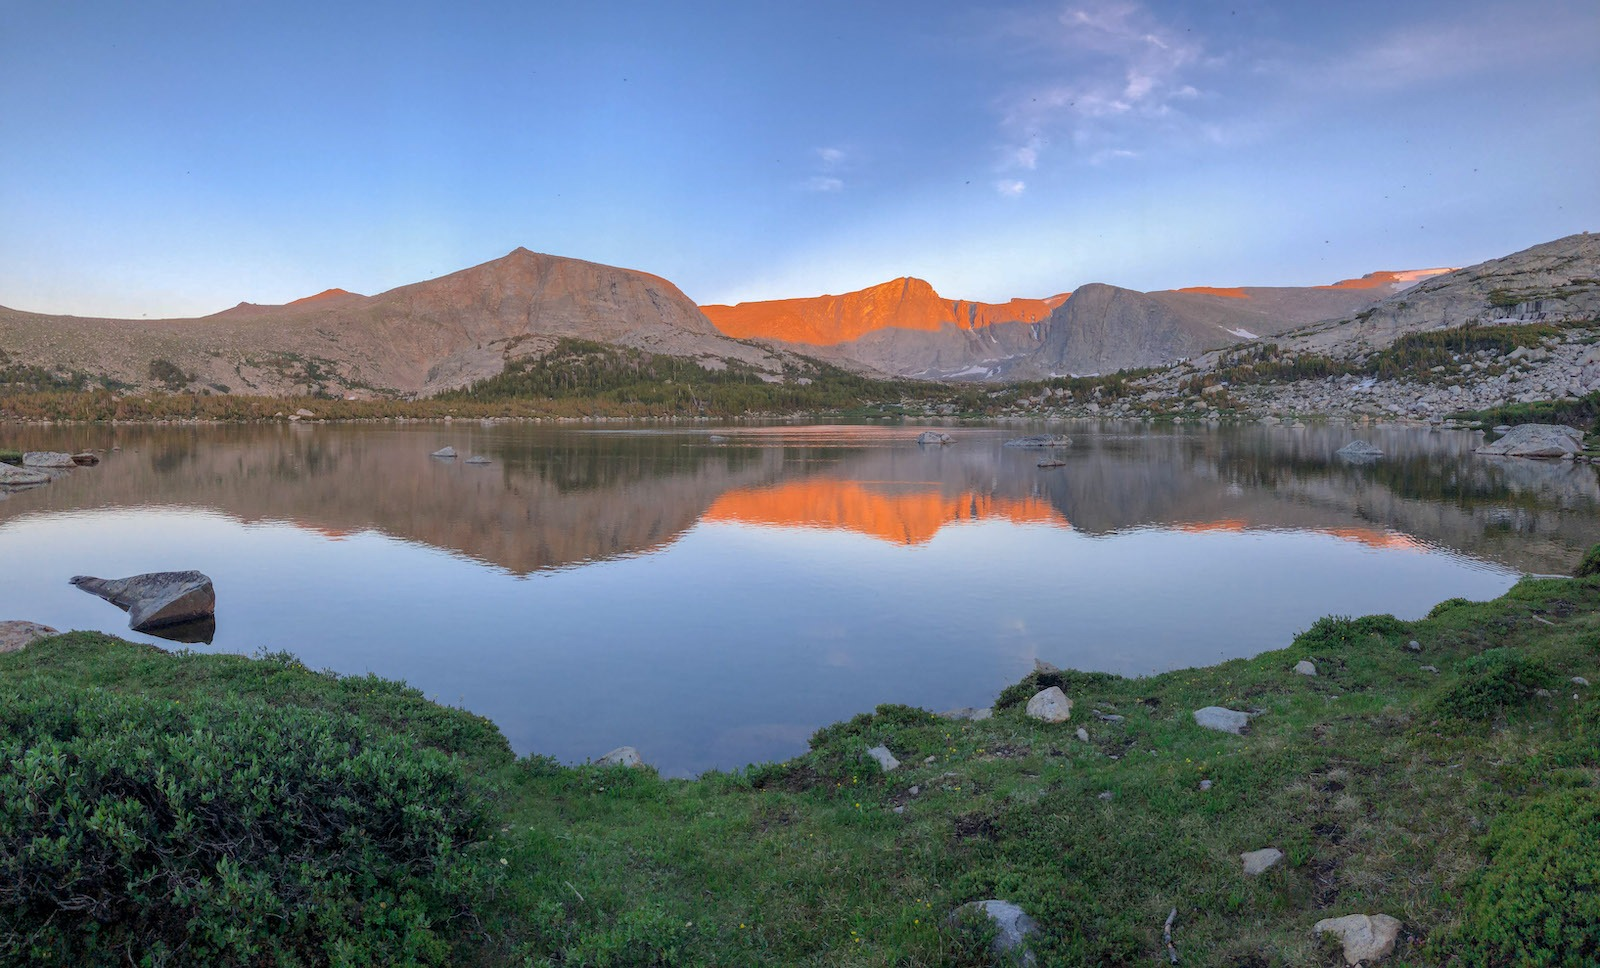 Sunset over an alpine lake in Wyoming in the Wind River Mountains